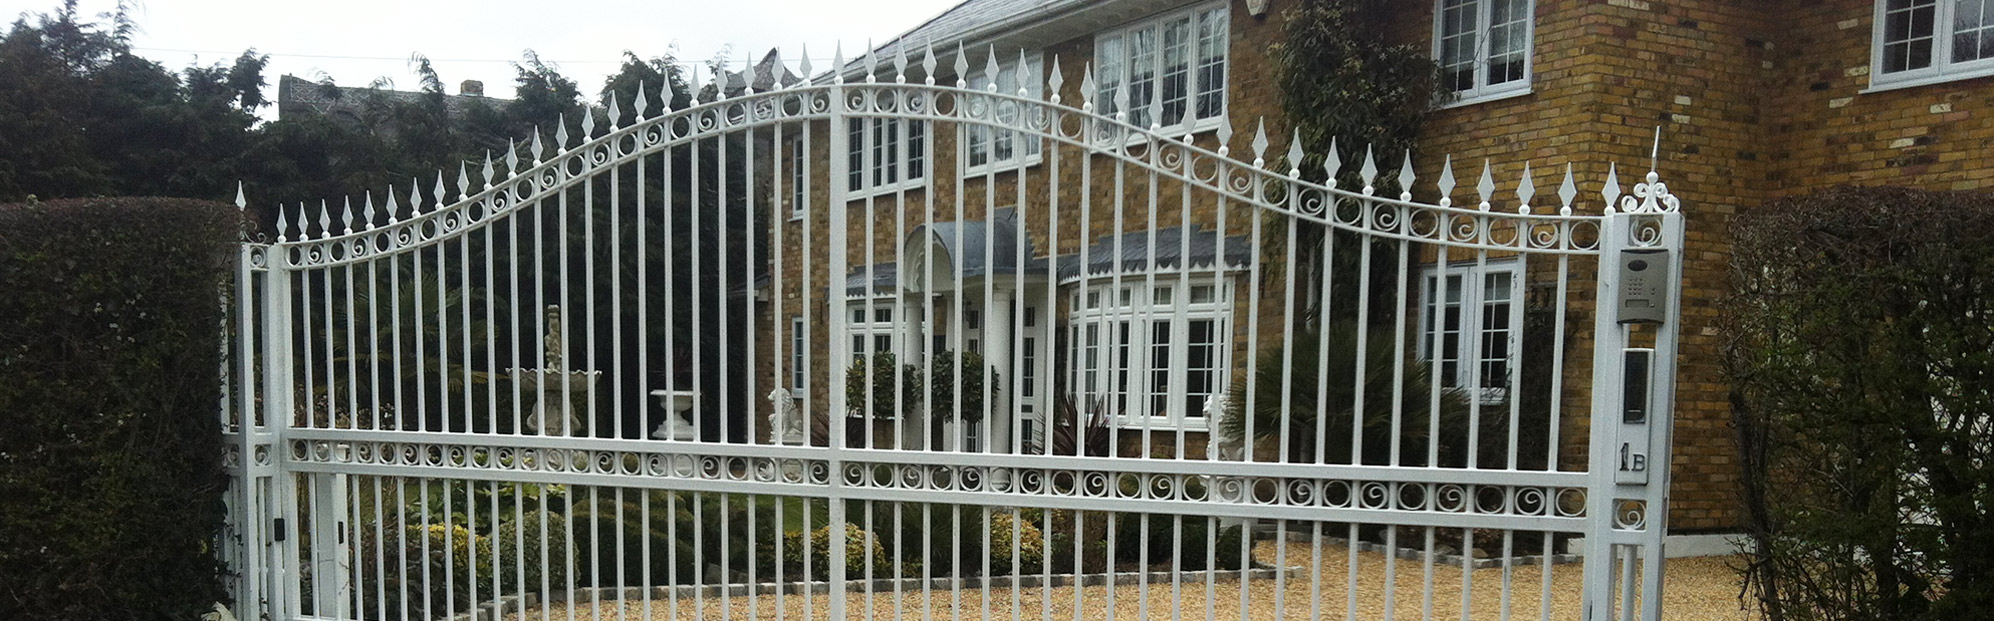 Automated-gate-maintenance-kent